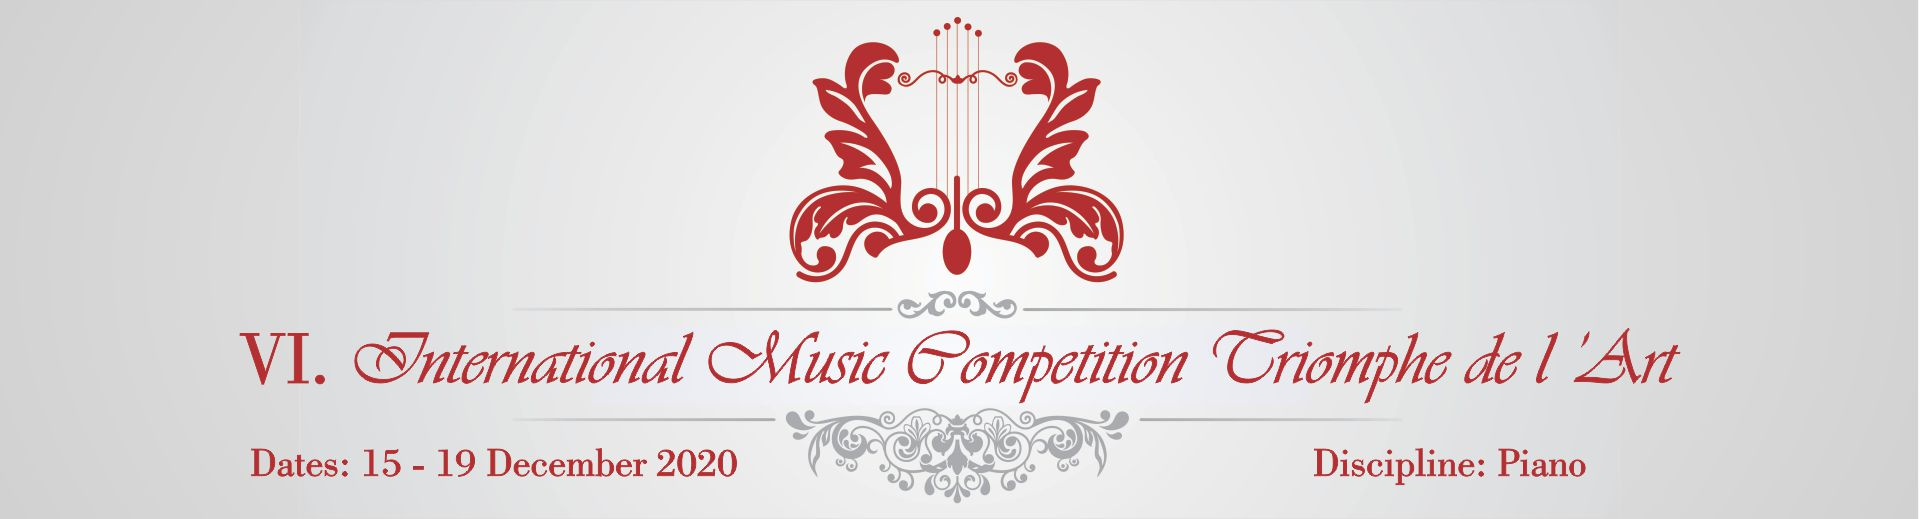 VI. International Music Competition Triomphe de l'Art